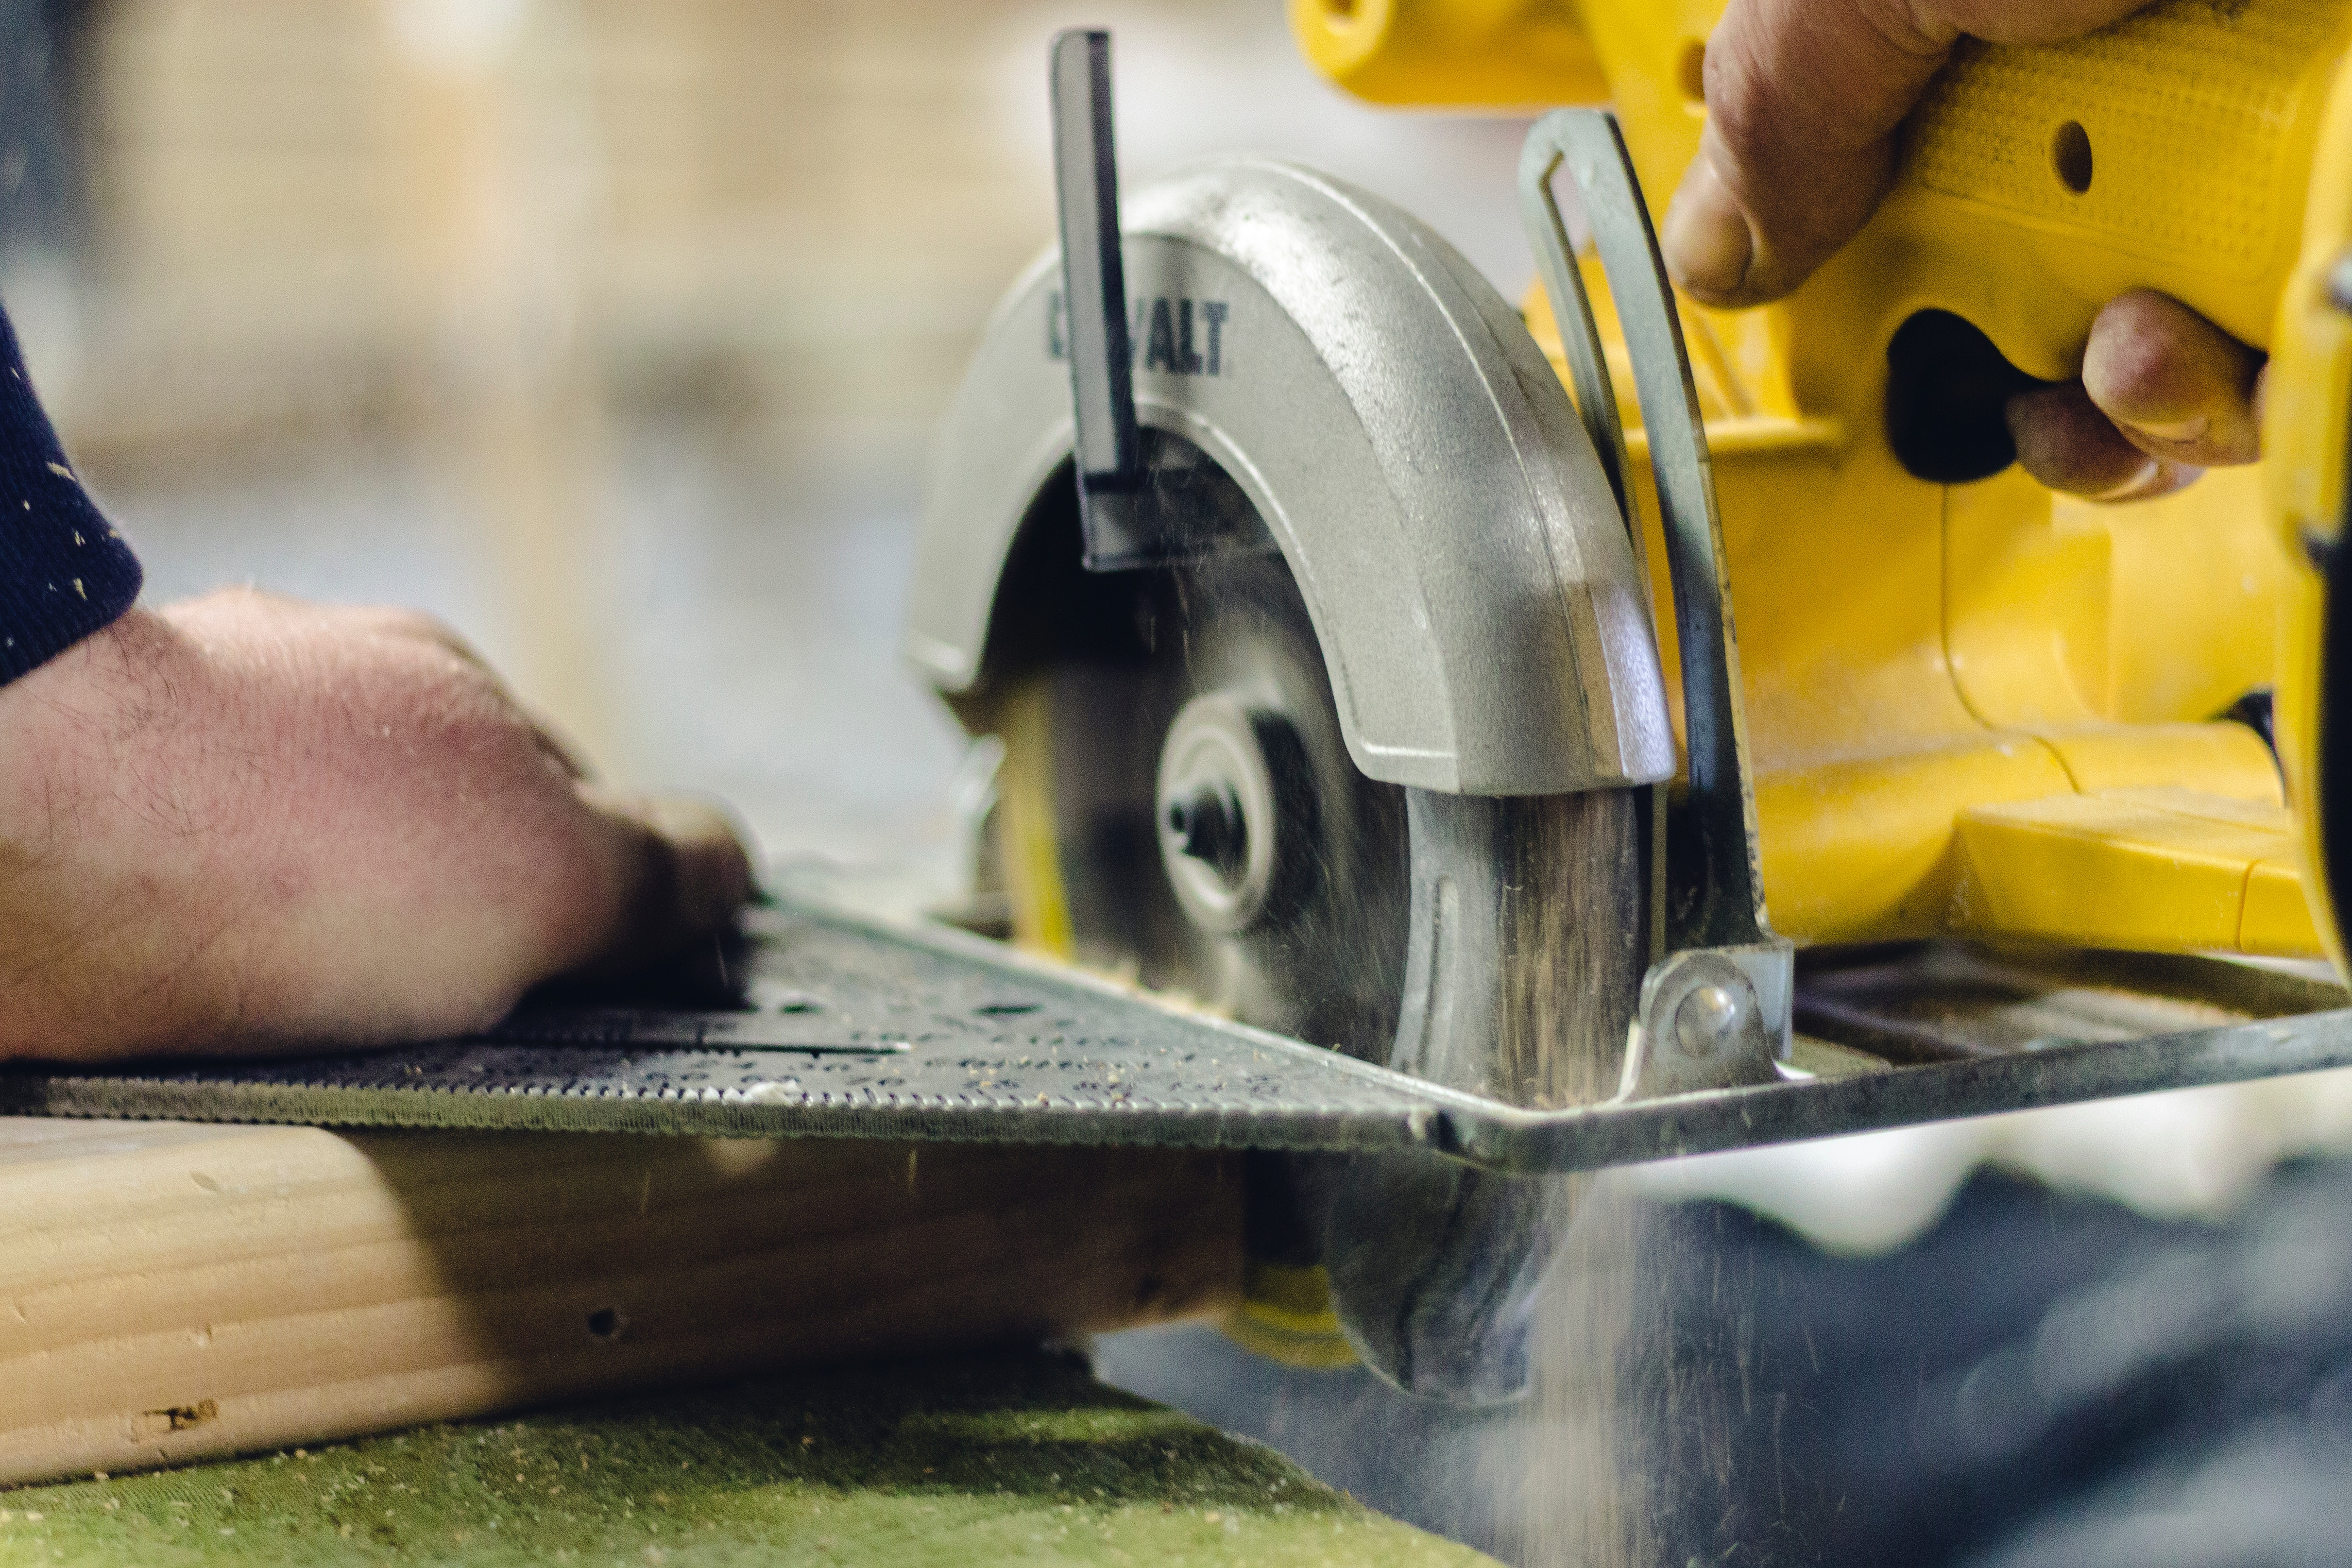 5 Power Tools to Upgrade Your DIY Projects